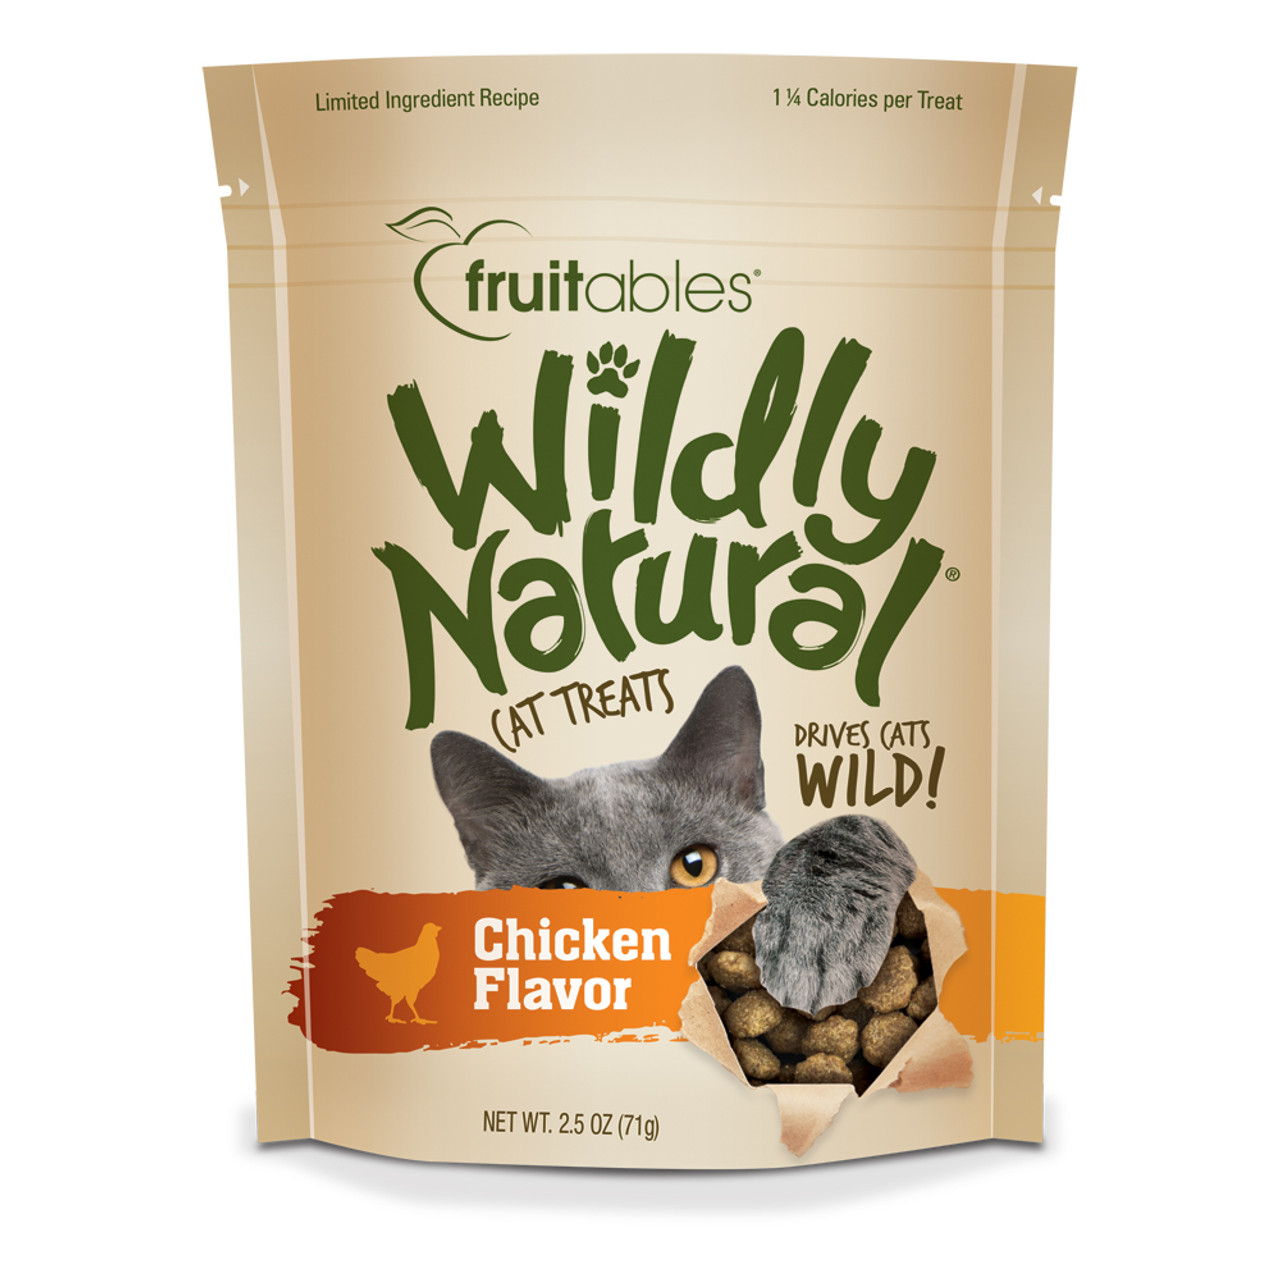 Fruitables Wildly Natural Chicken Flavor Cat Treats